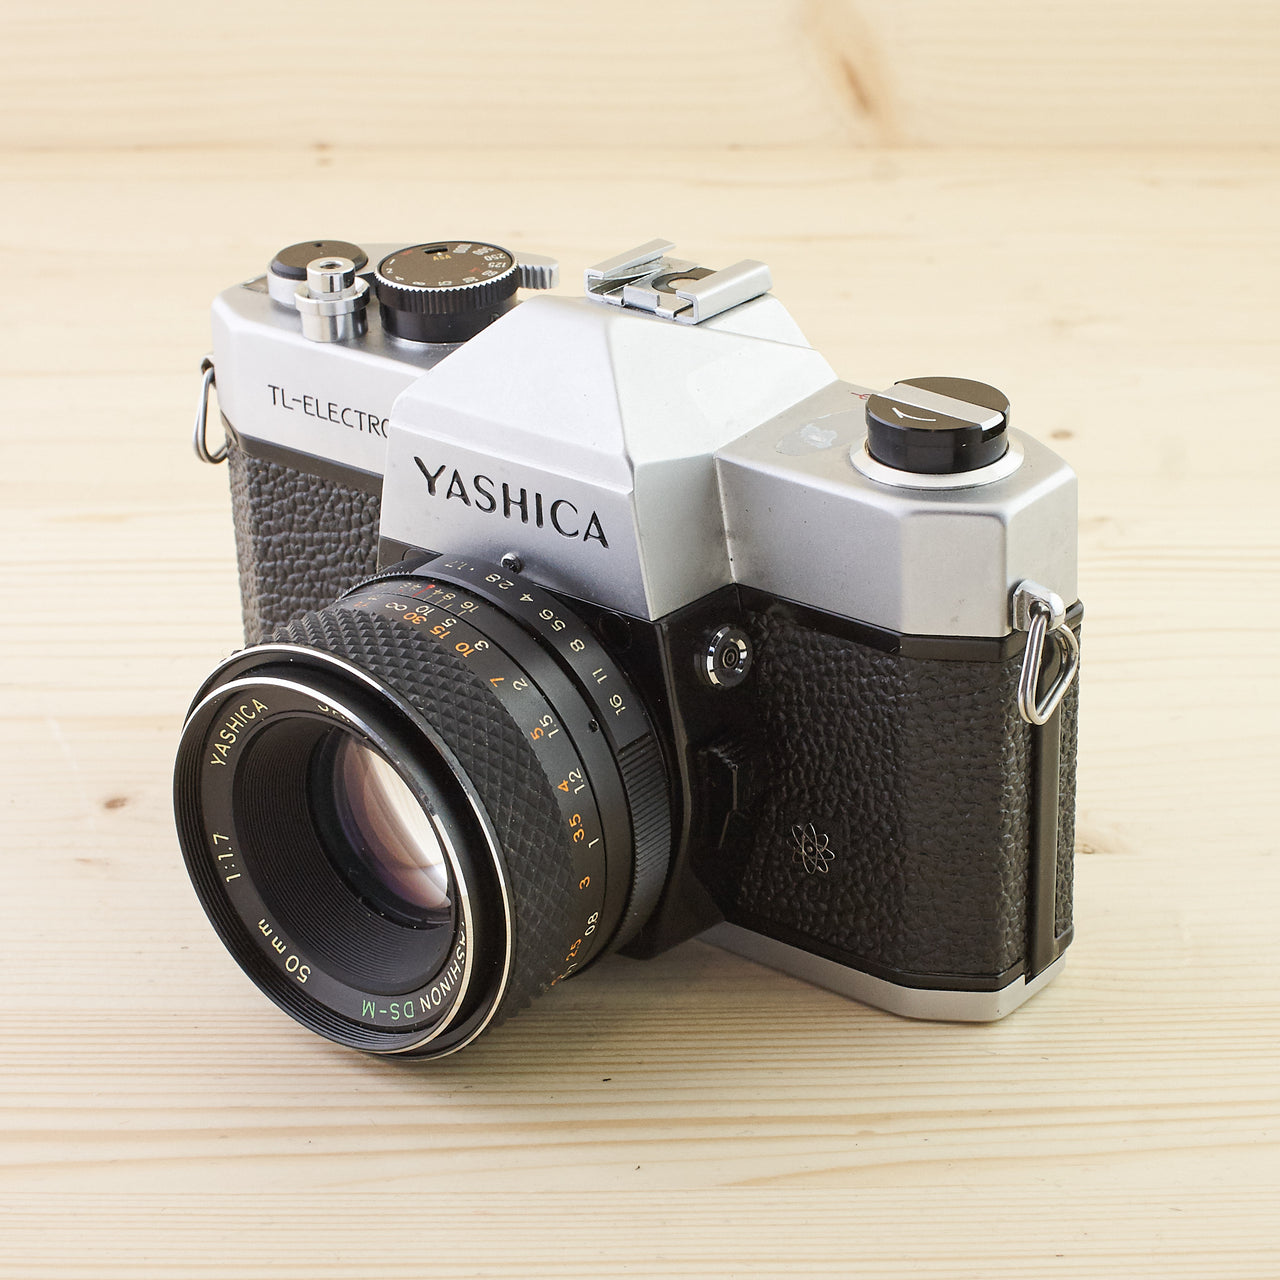 Yashica TL-Electro w/ 50mm f/1.7 Avg - West Yorkshire Cameras